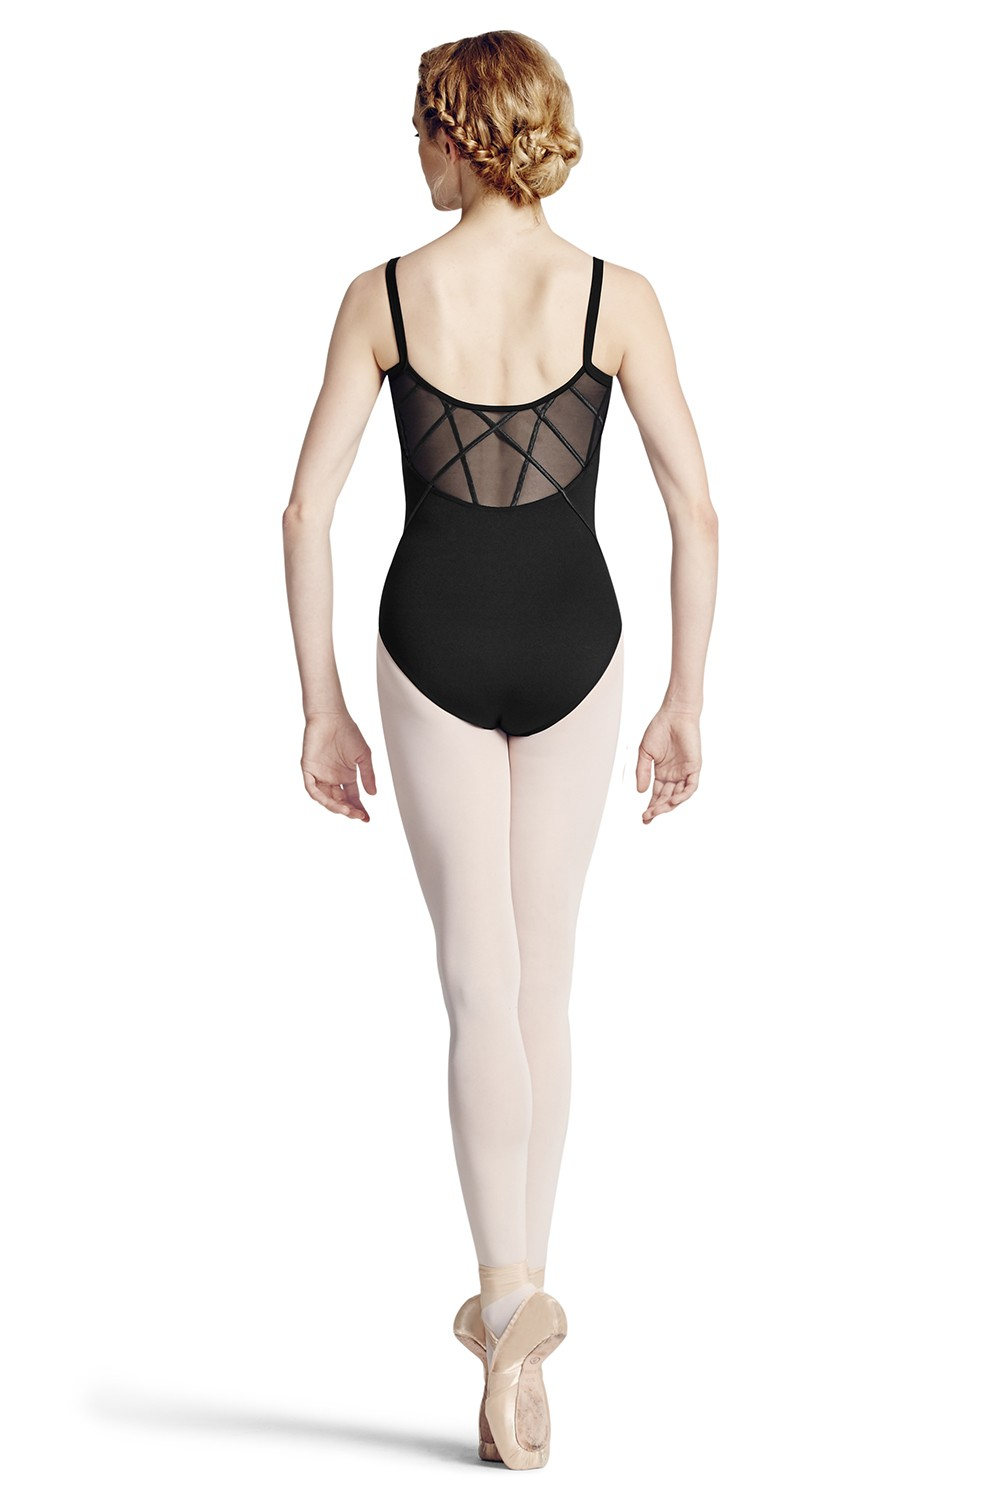 Deneb Women's Dance Leotards